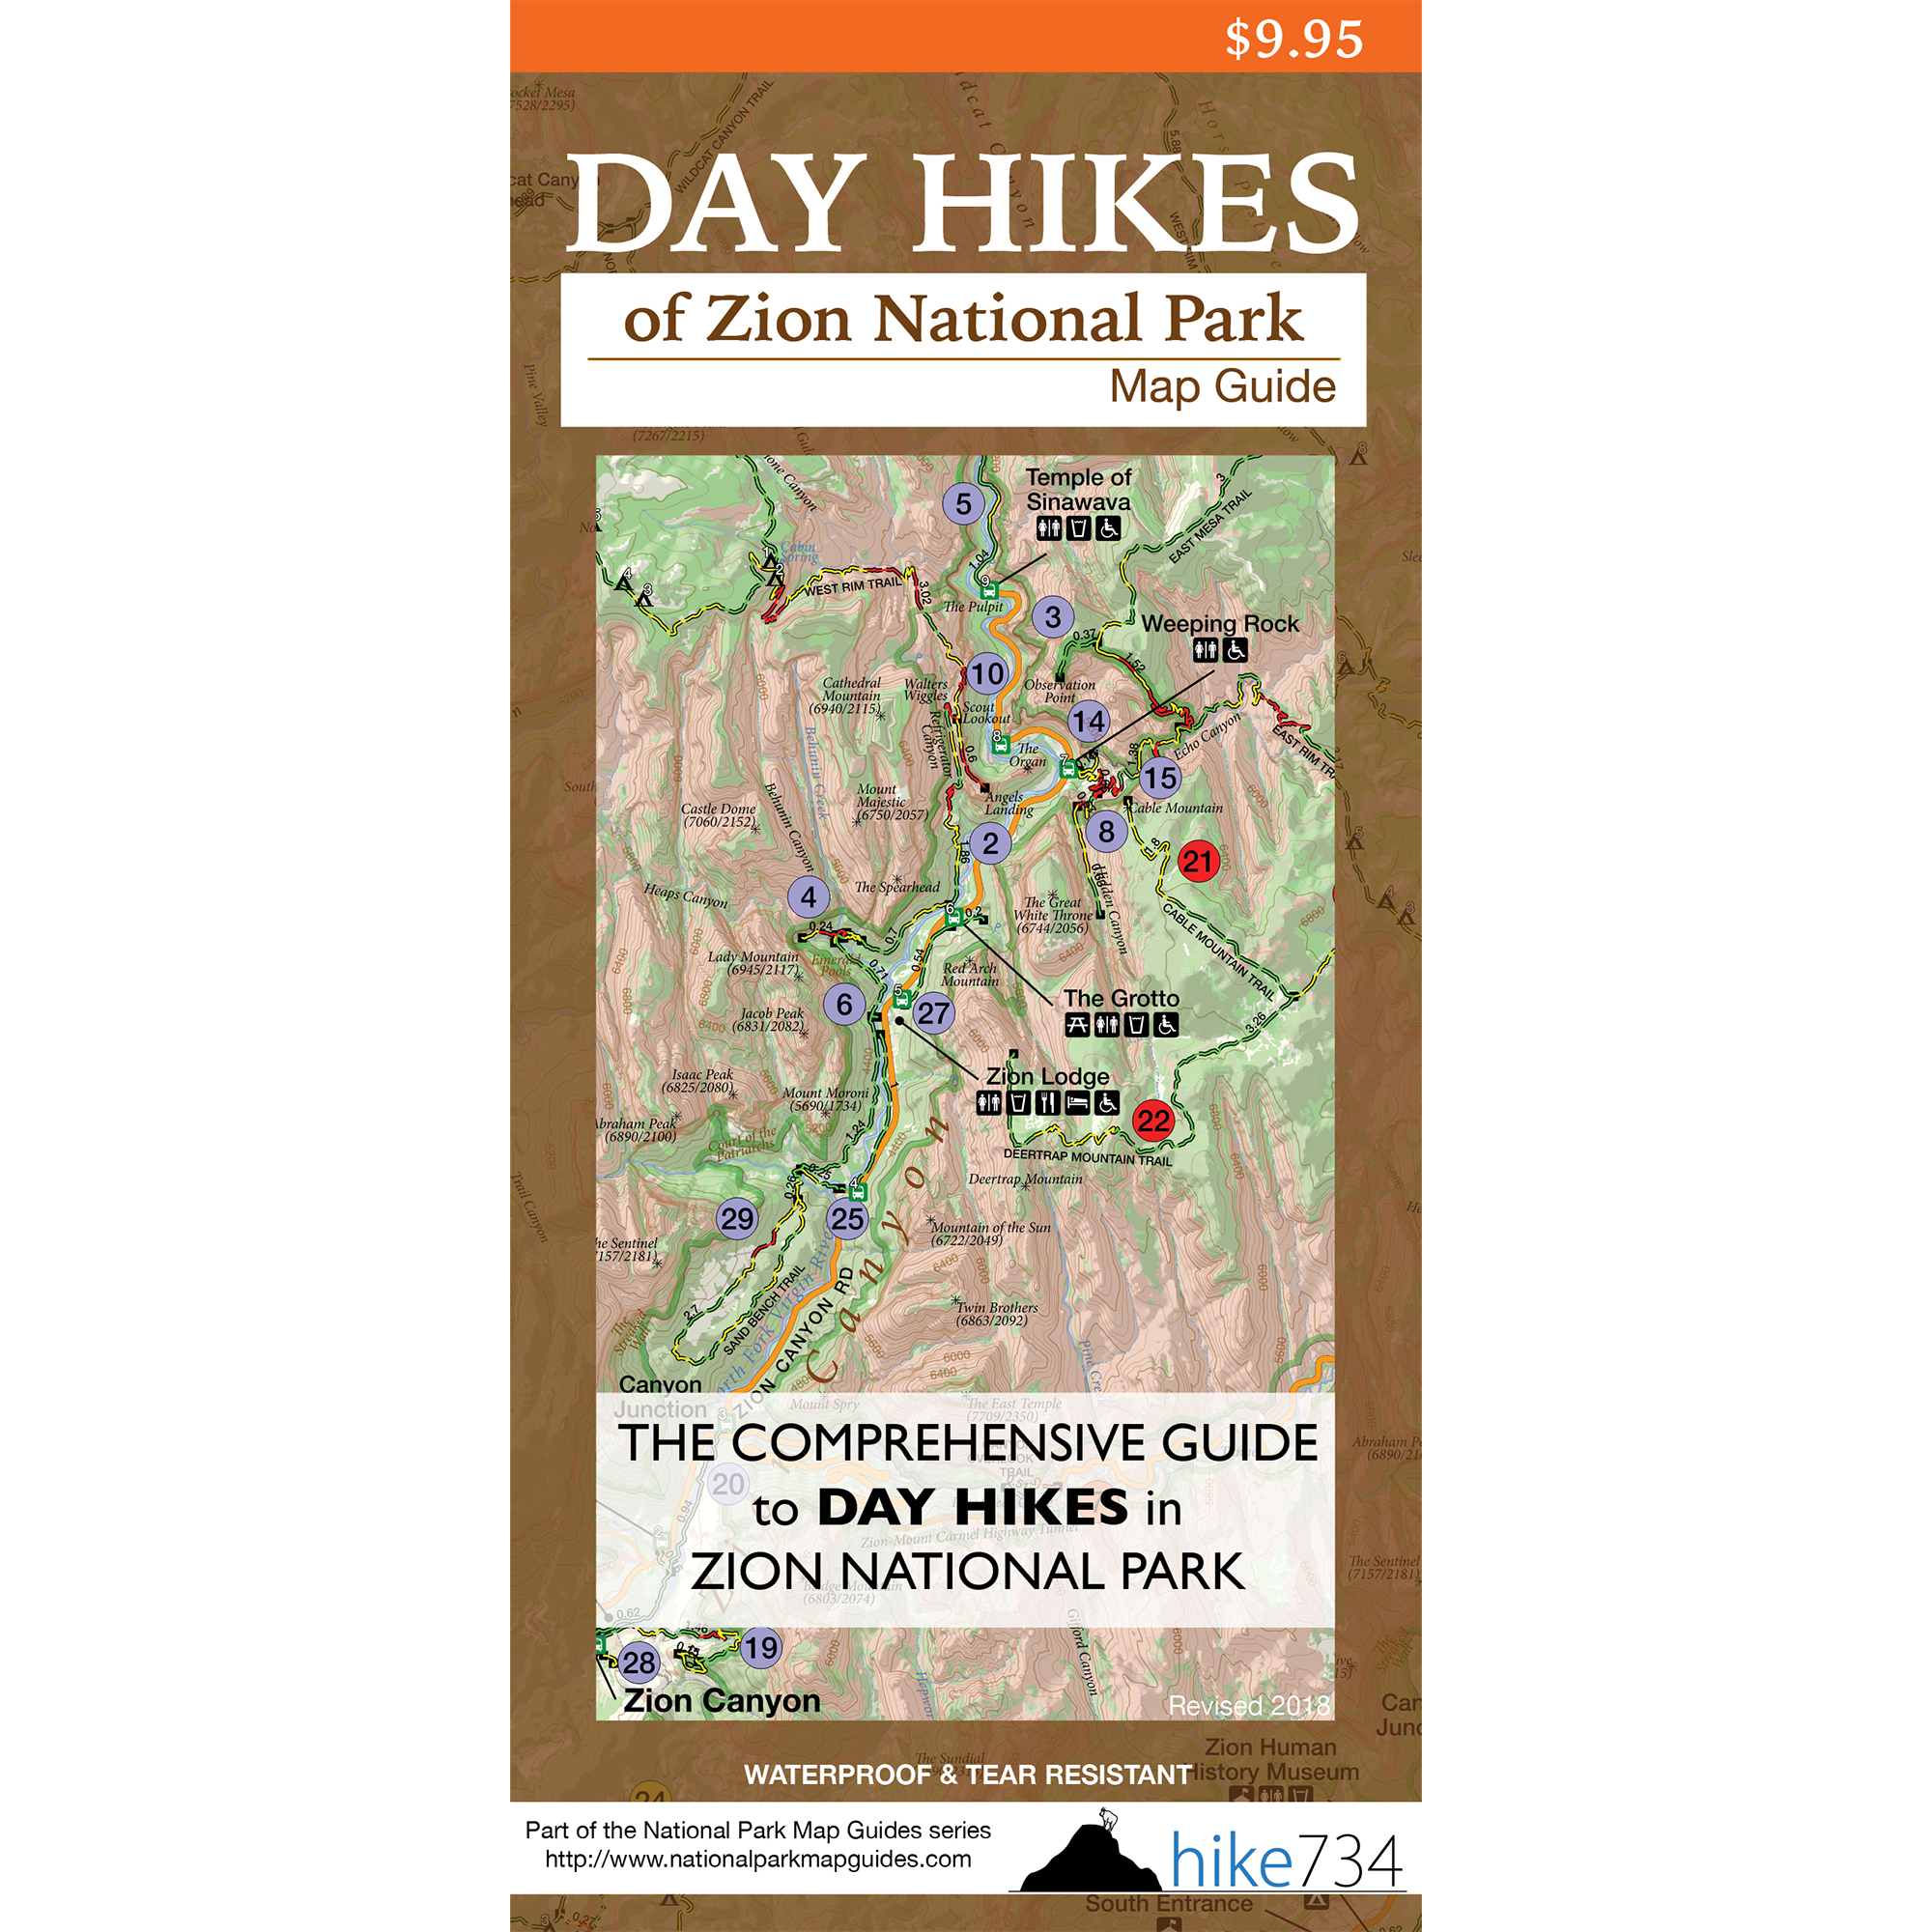 Day Hikes of Zion National Park Map Guide on san isabel national forest trail map, cuyamaca rancho state park trail map, white river national forest trail map, beacon rock state park trail map, colorado national monument trail map, petrified forest trail map, big cypress national preserve trail map, black mountains trail map, fishlake national forest trail map, chickasaw national recreation area trail map, zion east rim trail map, kaibab national forest trail map, capitol reef trail map, glacier national park on us map, cuyahoga valley national park trail map, yellowstone national park map, national hiking trails map, draper trail map, angels landing trail map, mt. zion utah map,